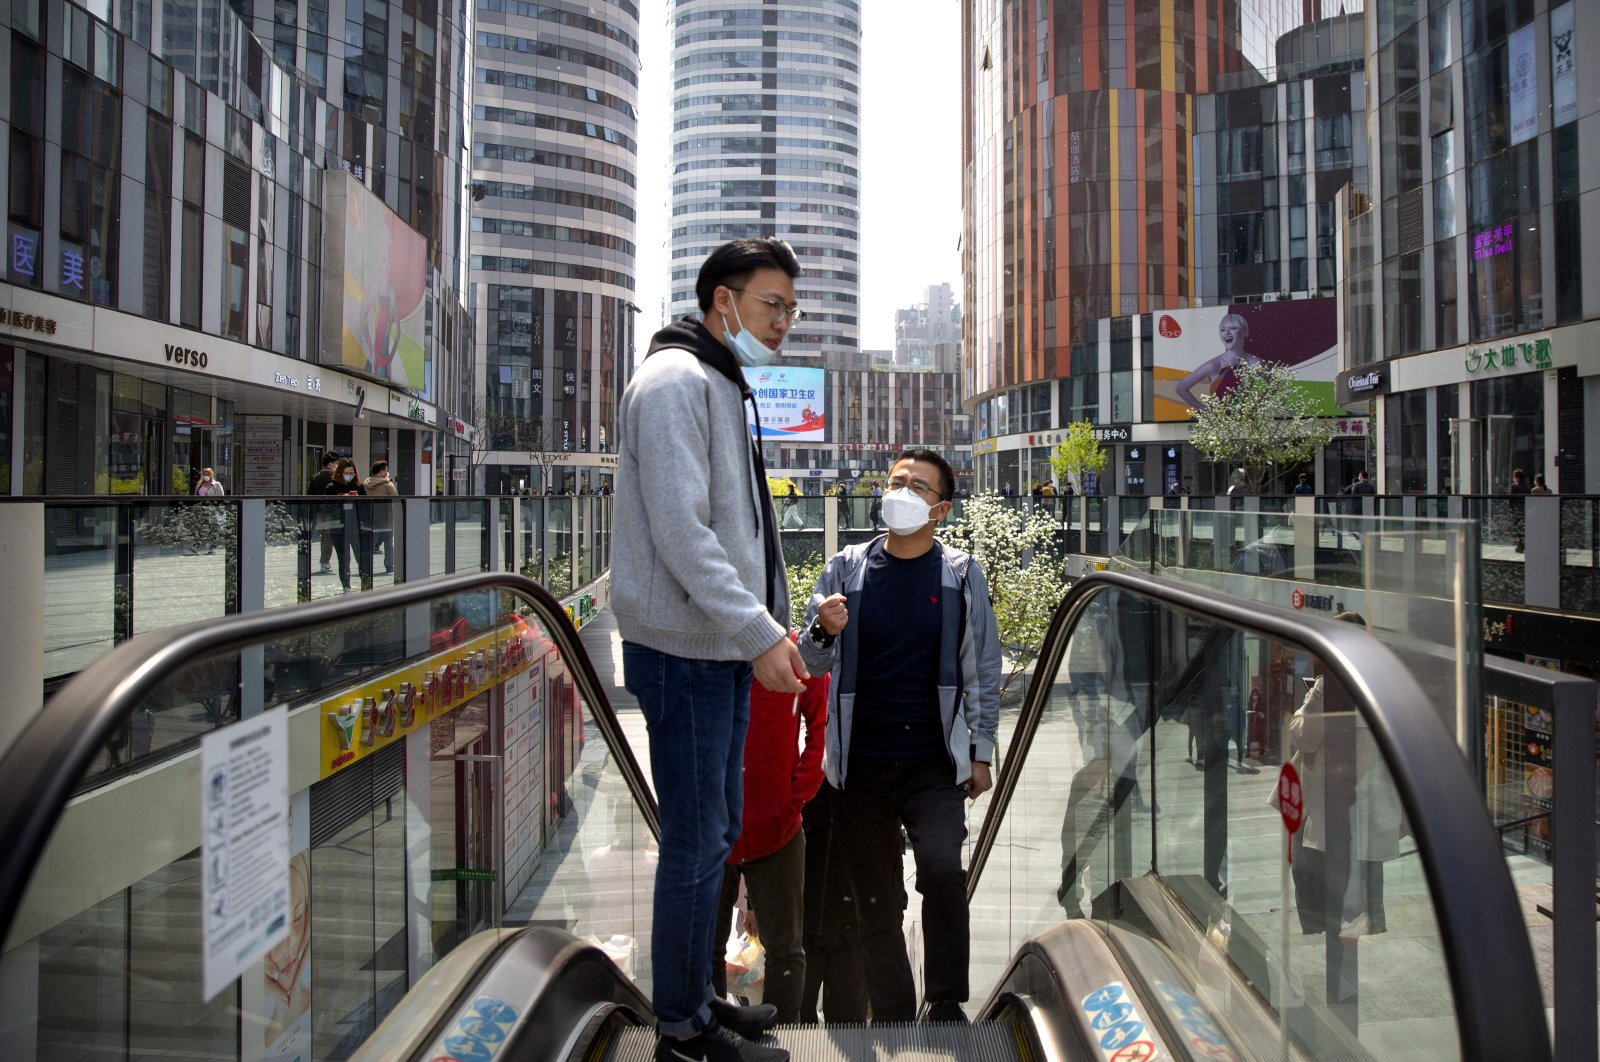 People wear face masks as they ride an escalator, Beijing, China, Tuesday, April 7, 2020. (AP Photo)